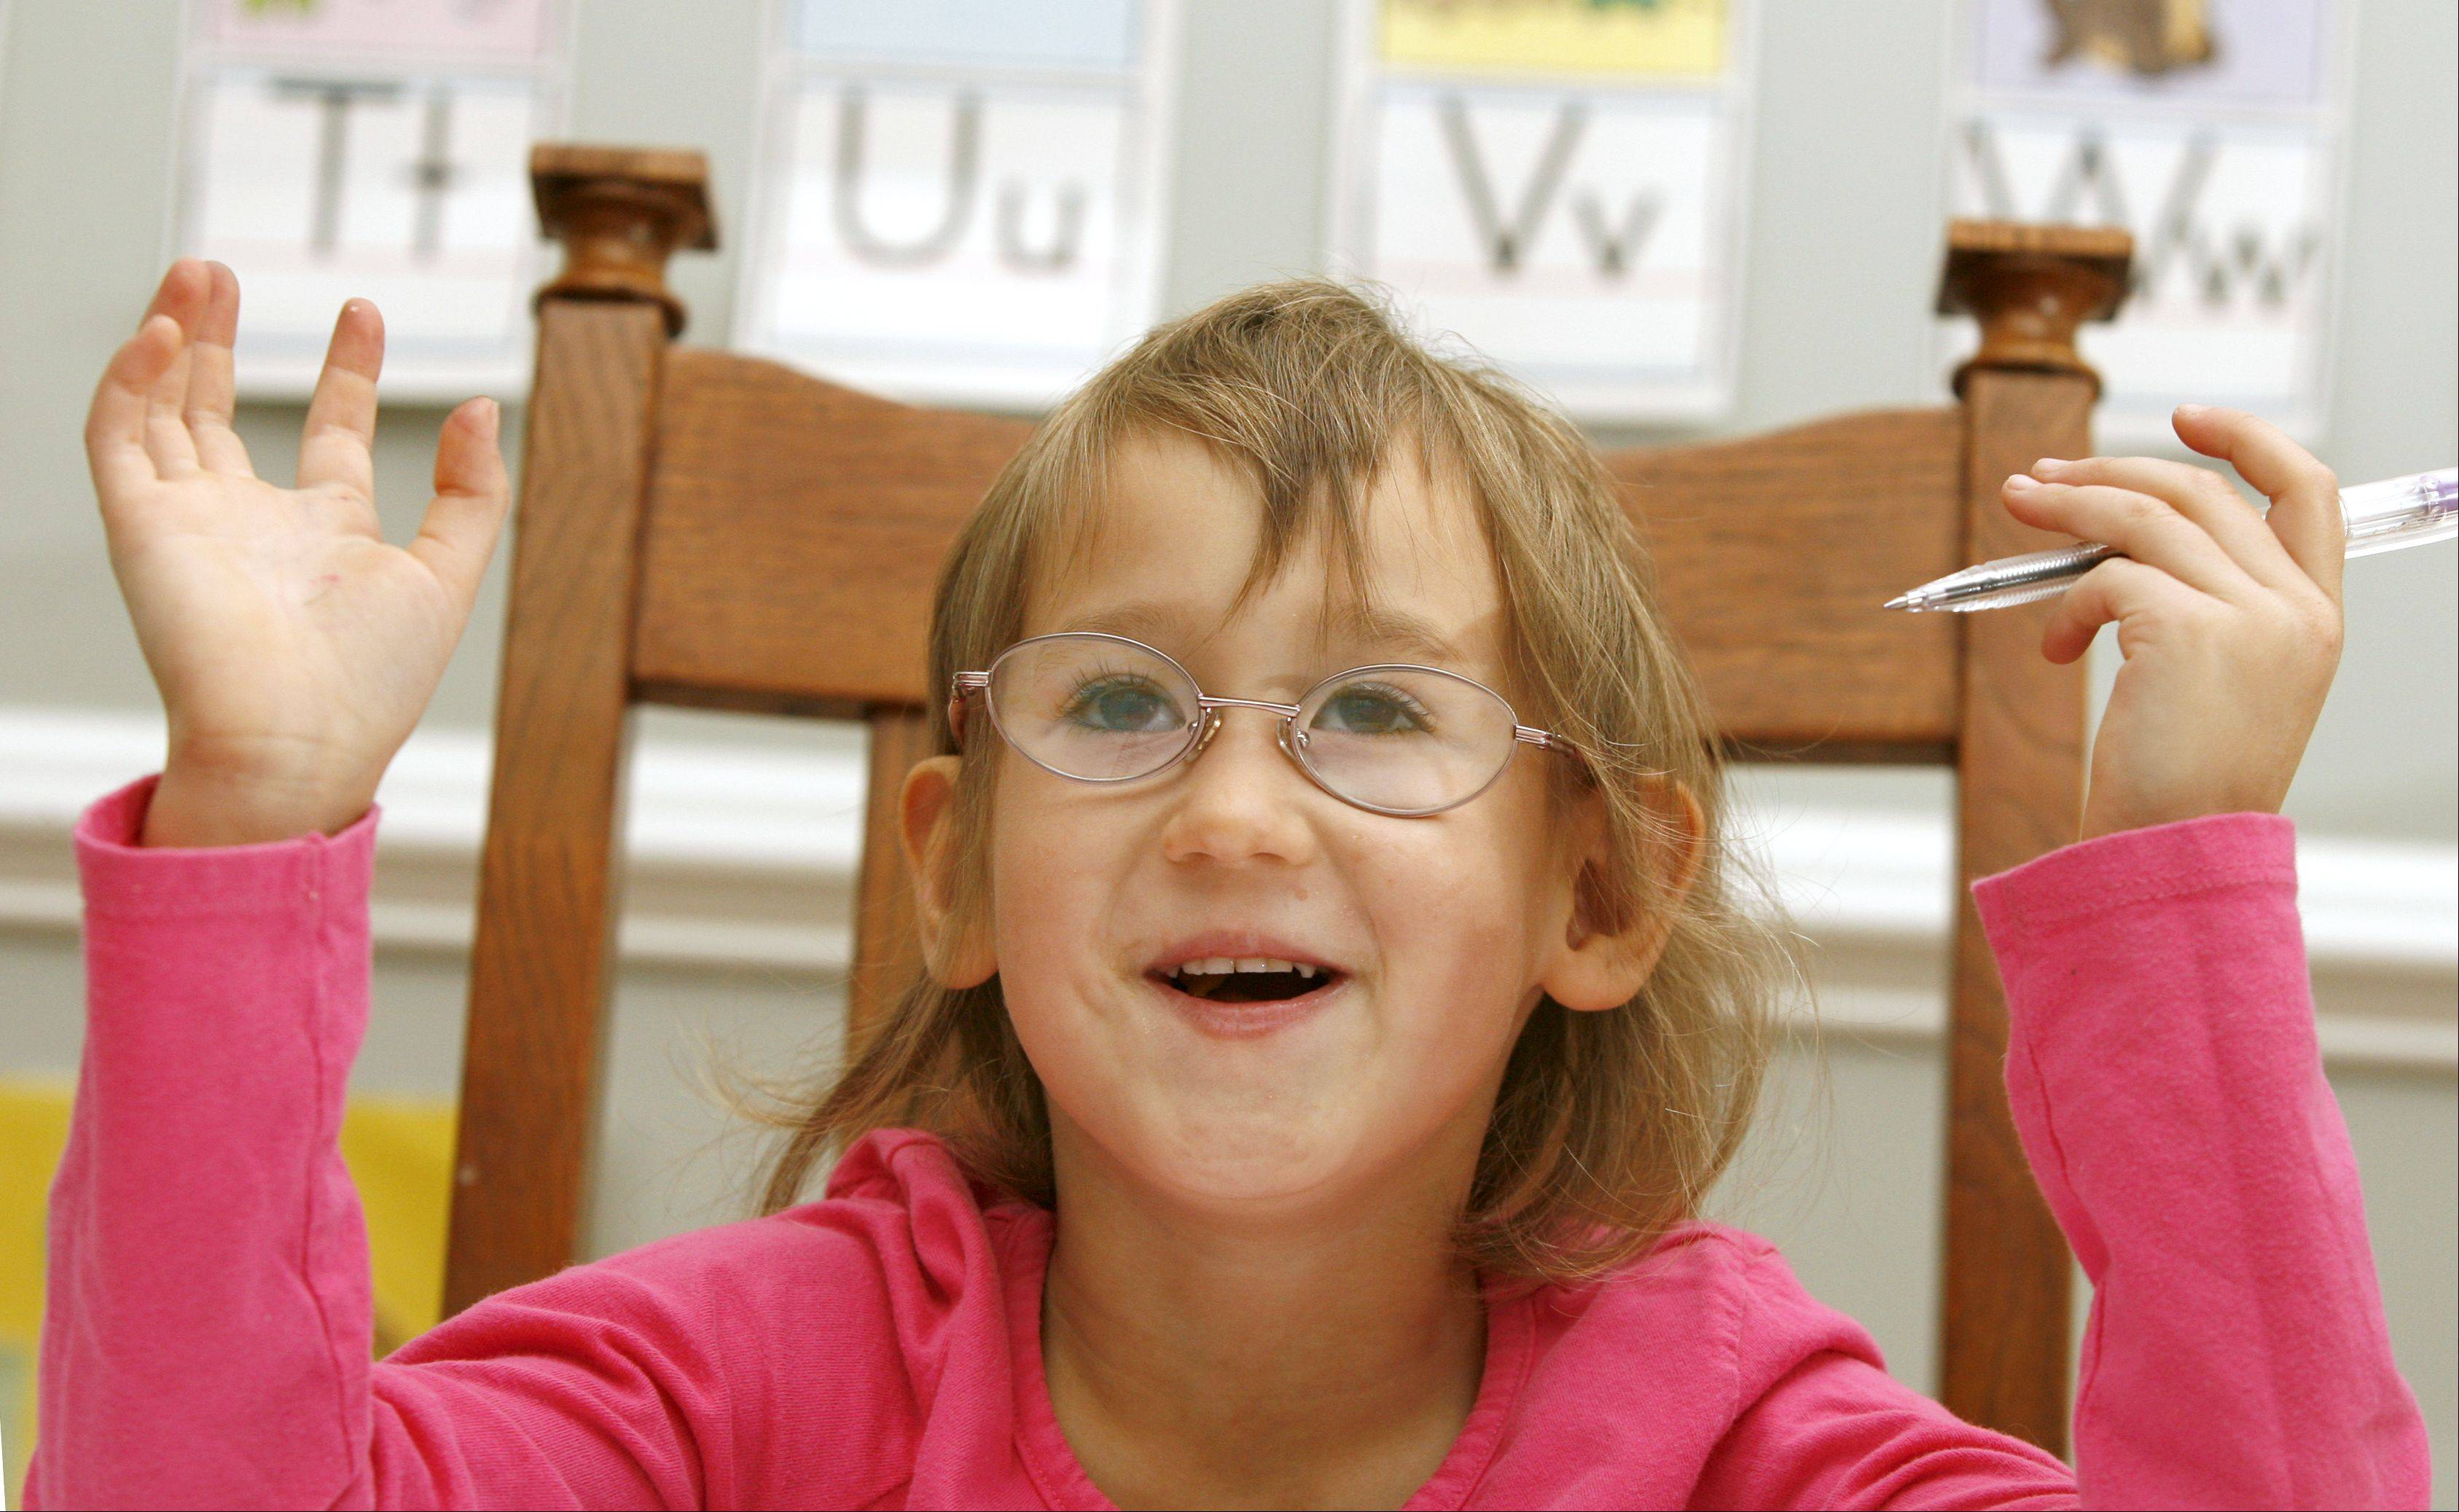 Sasha Wagner, 5, of Glen Ellyn, who was adopted from Russia and has fetal alcohol syndrome, creates artwork at the dining room table.